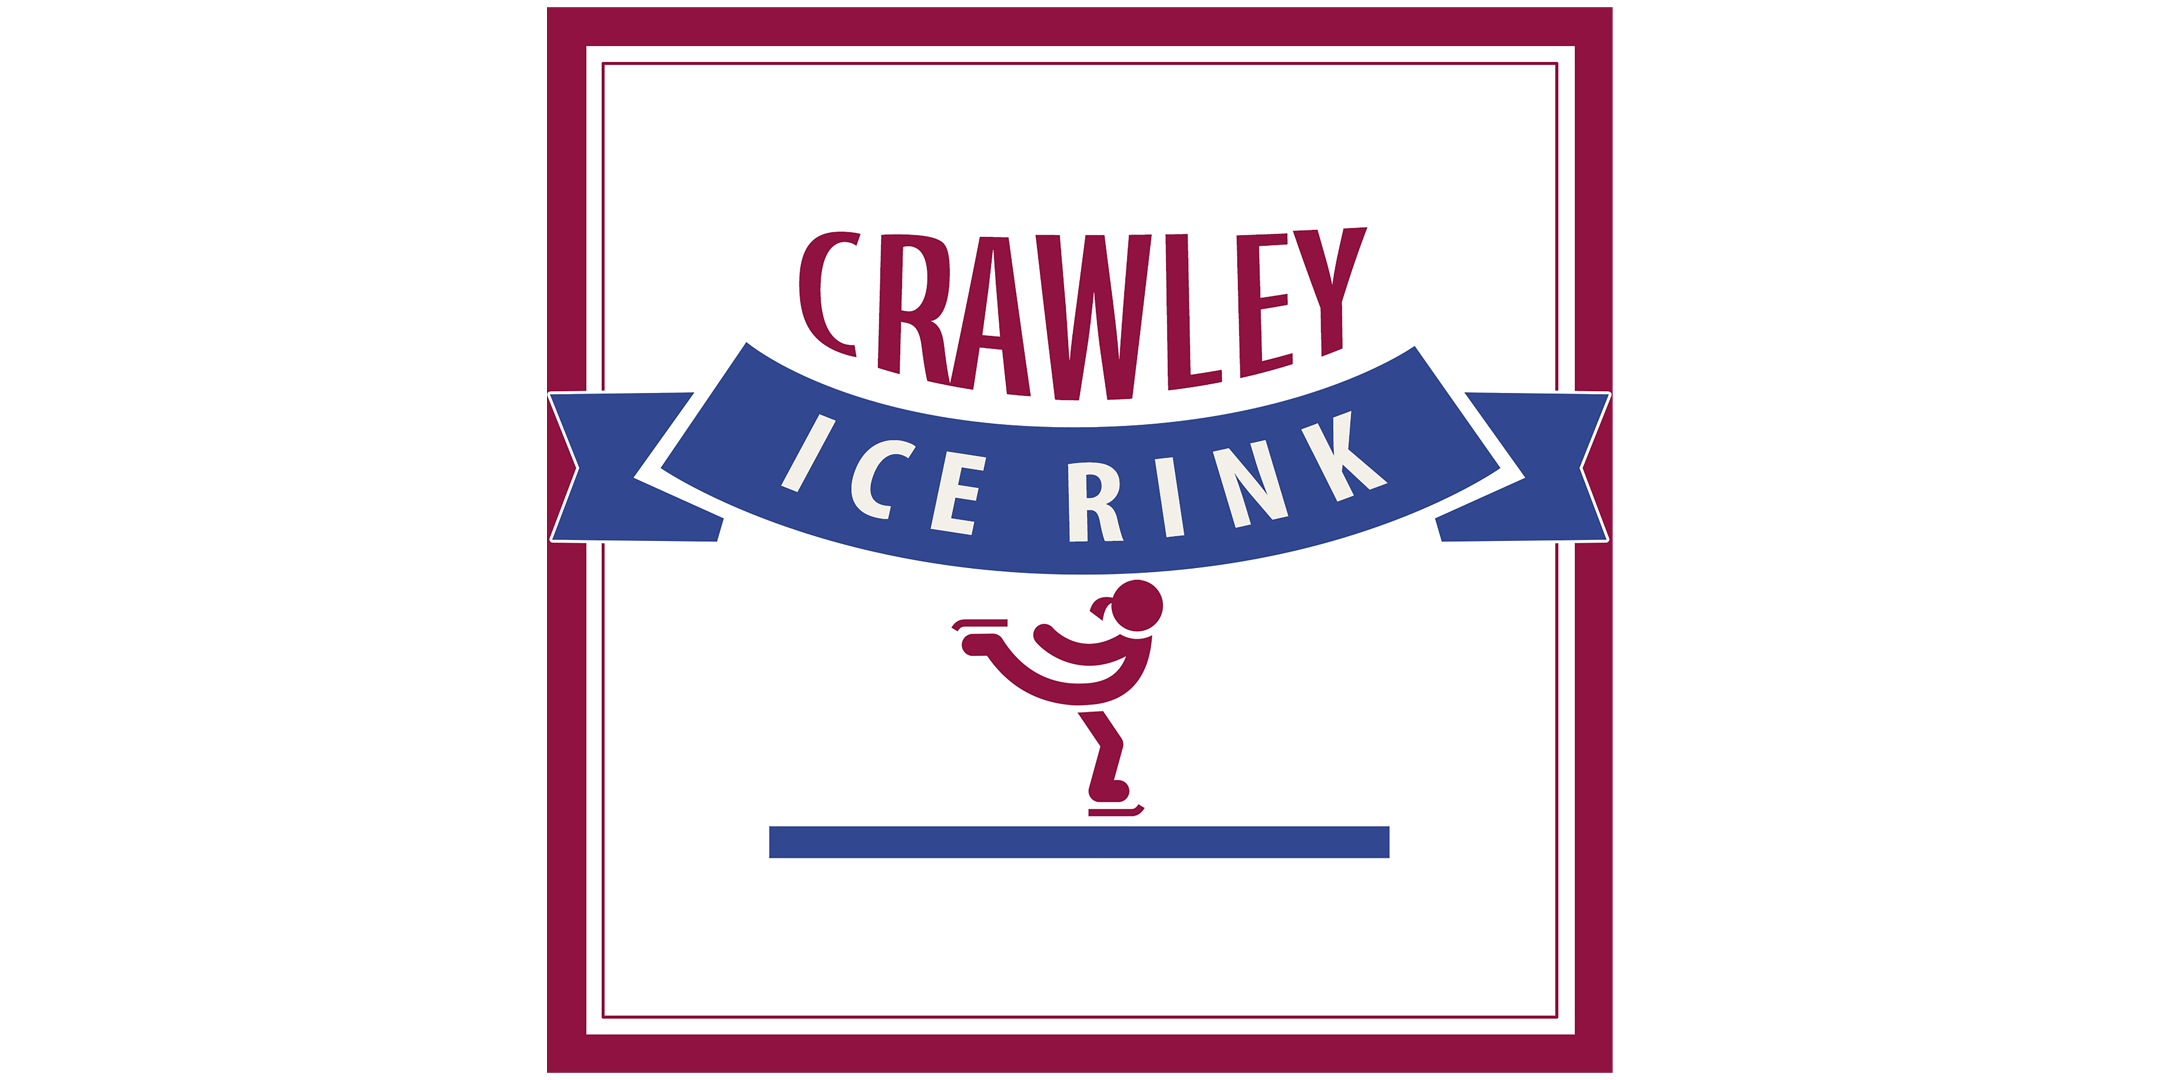 Crawley Ice Rink - 20th December (Off Peak)